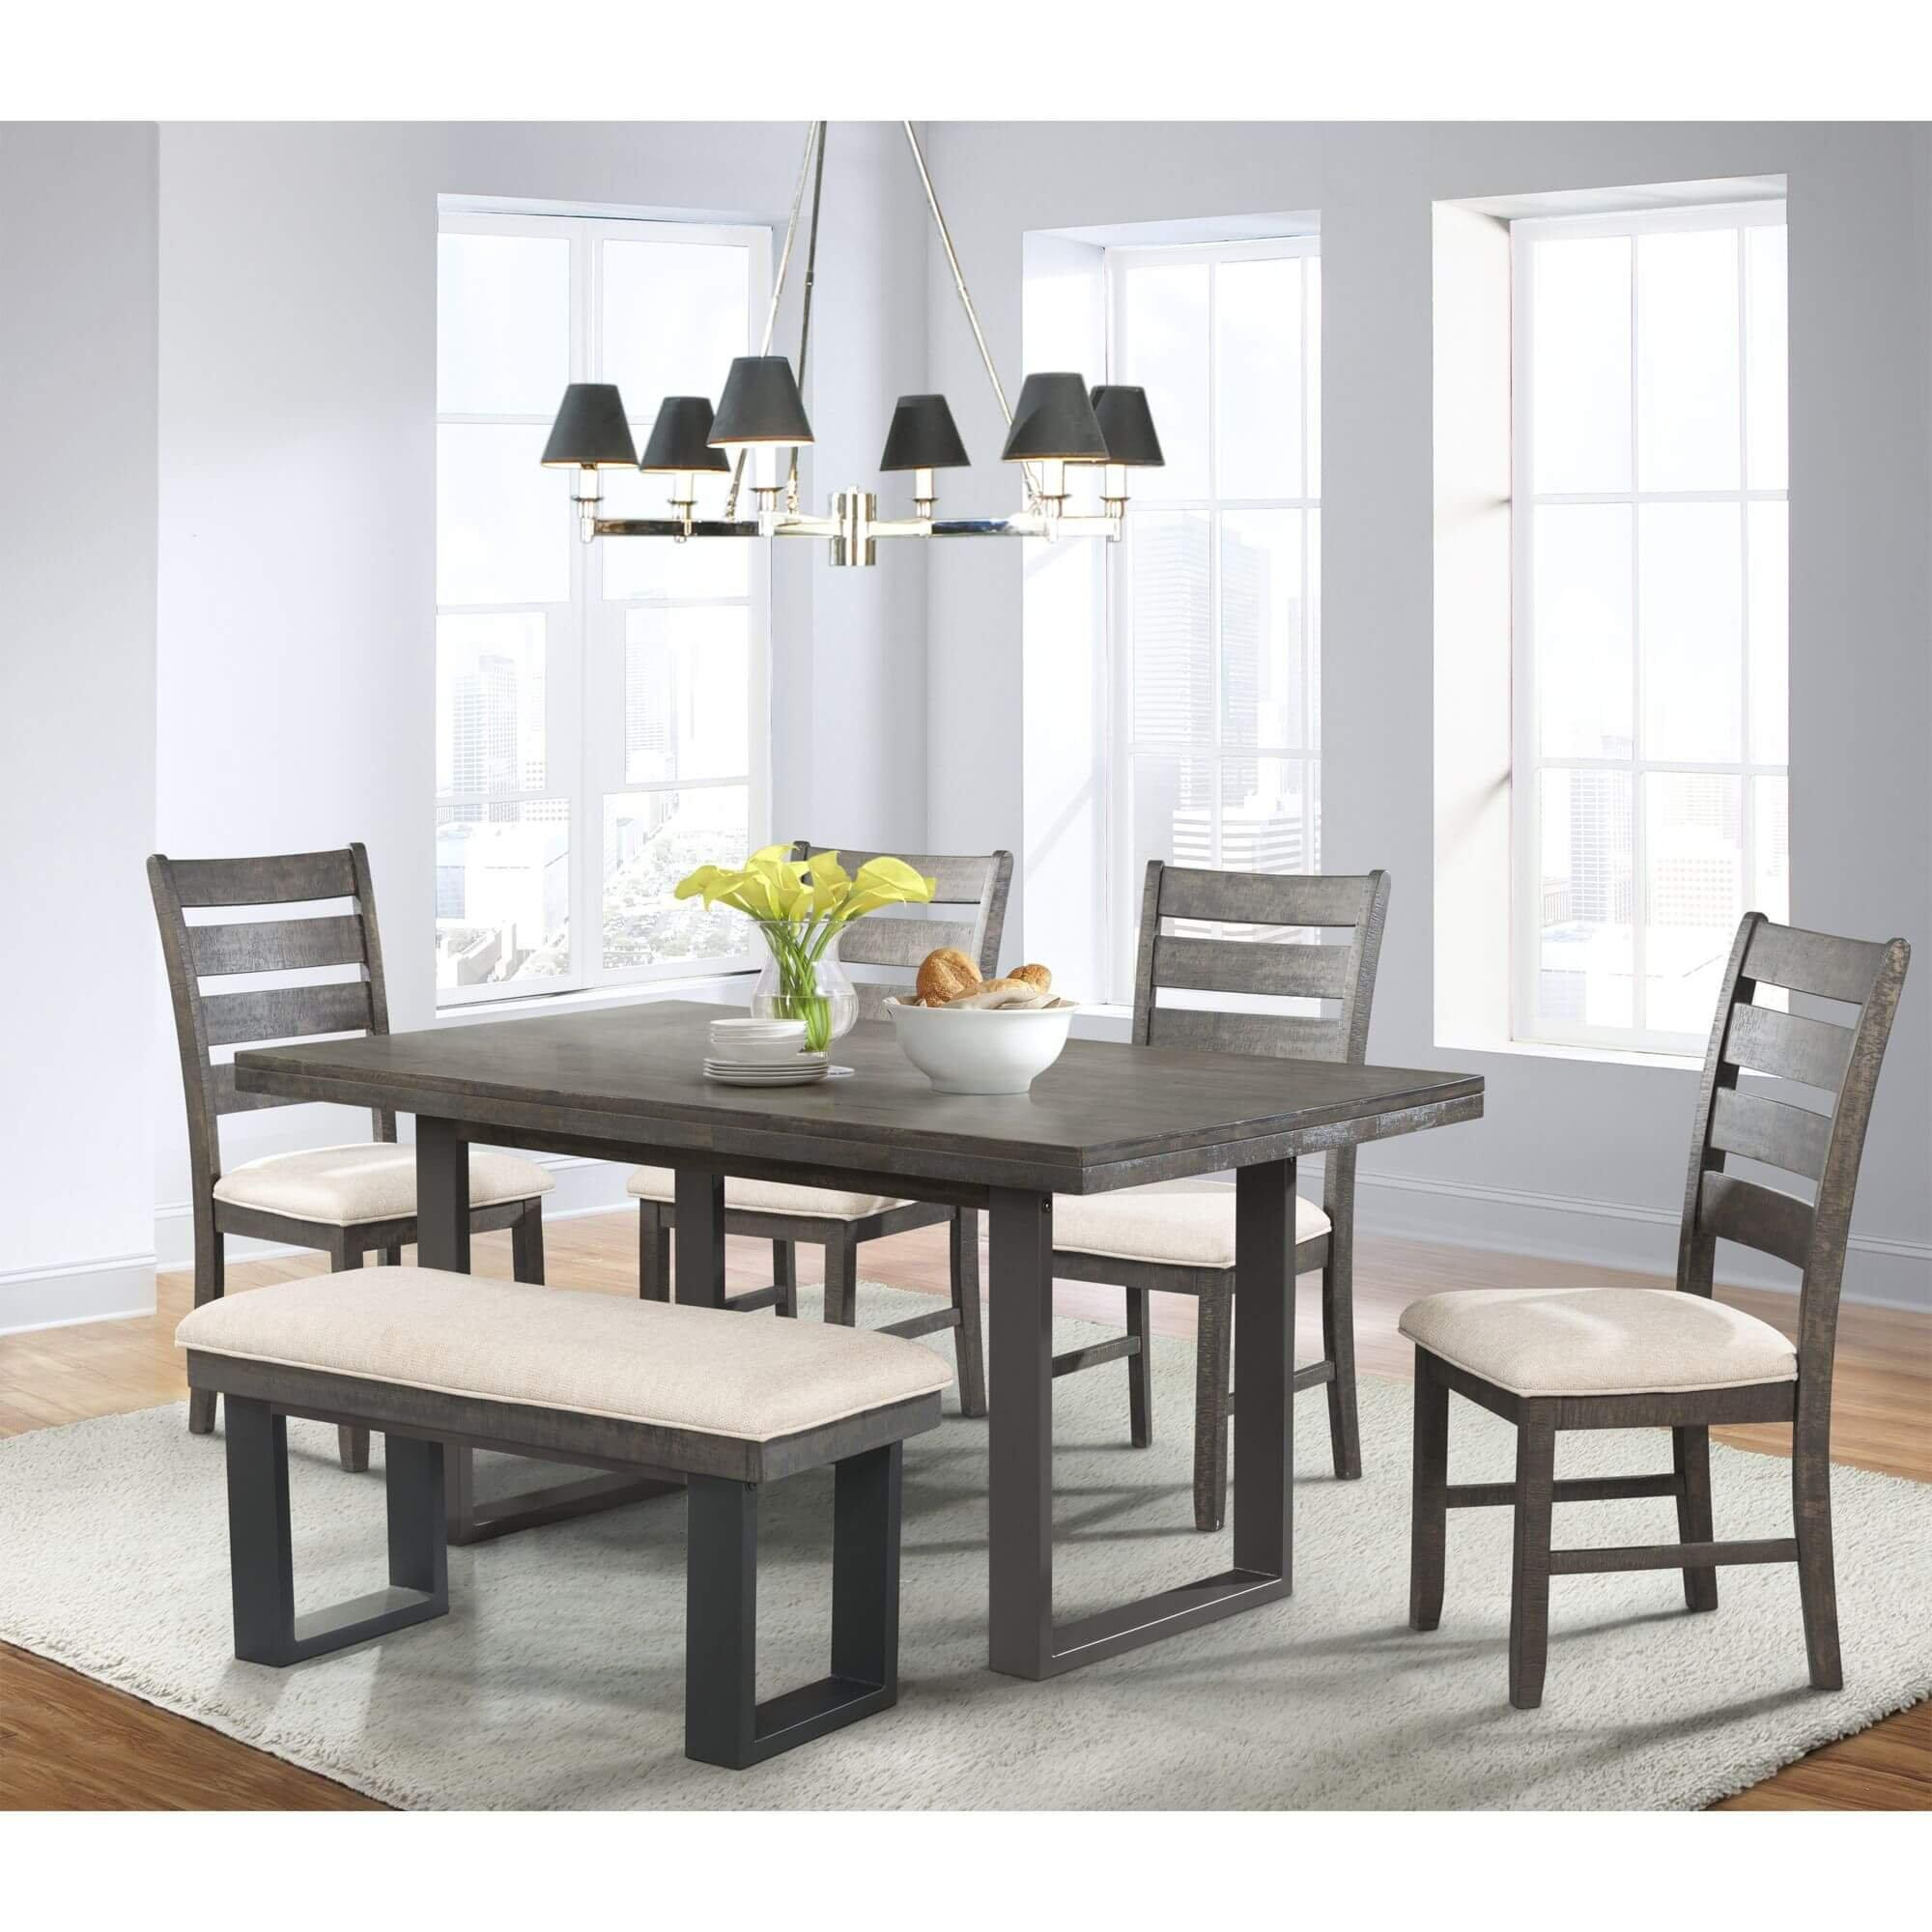 Piece Sawyer Dining Room Collection, Aarons Dining Room Sets